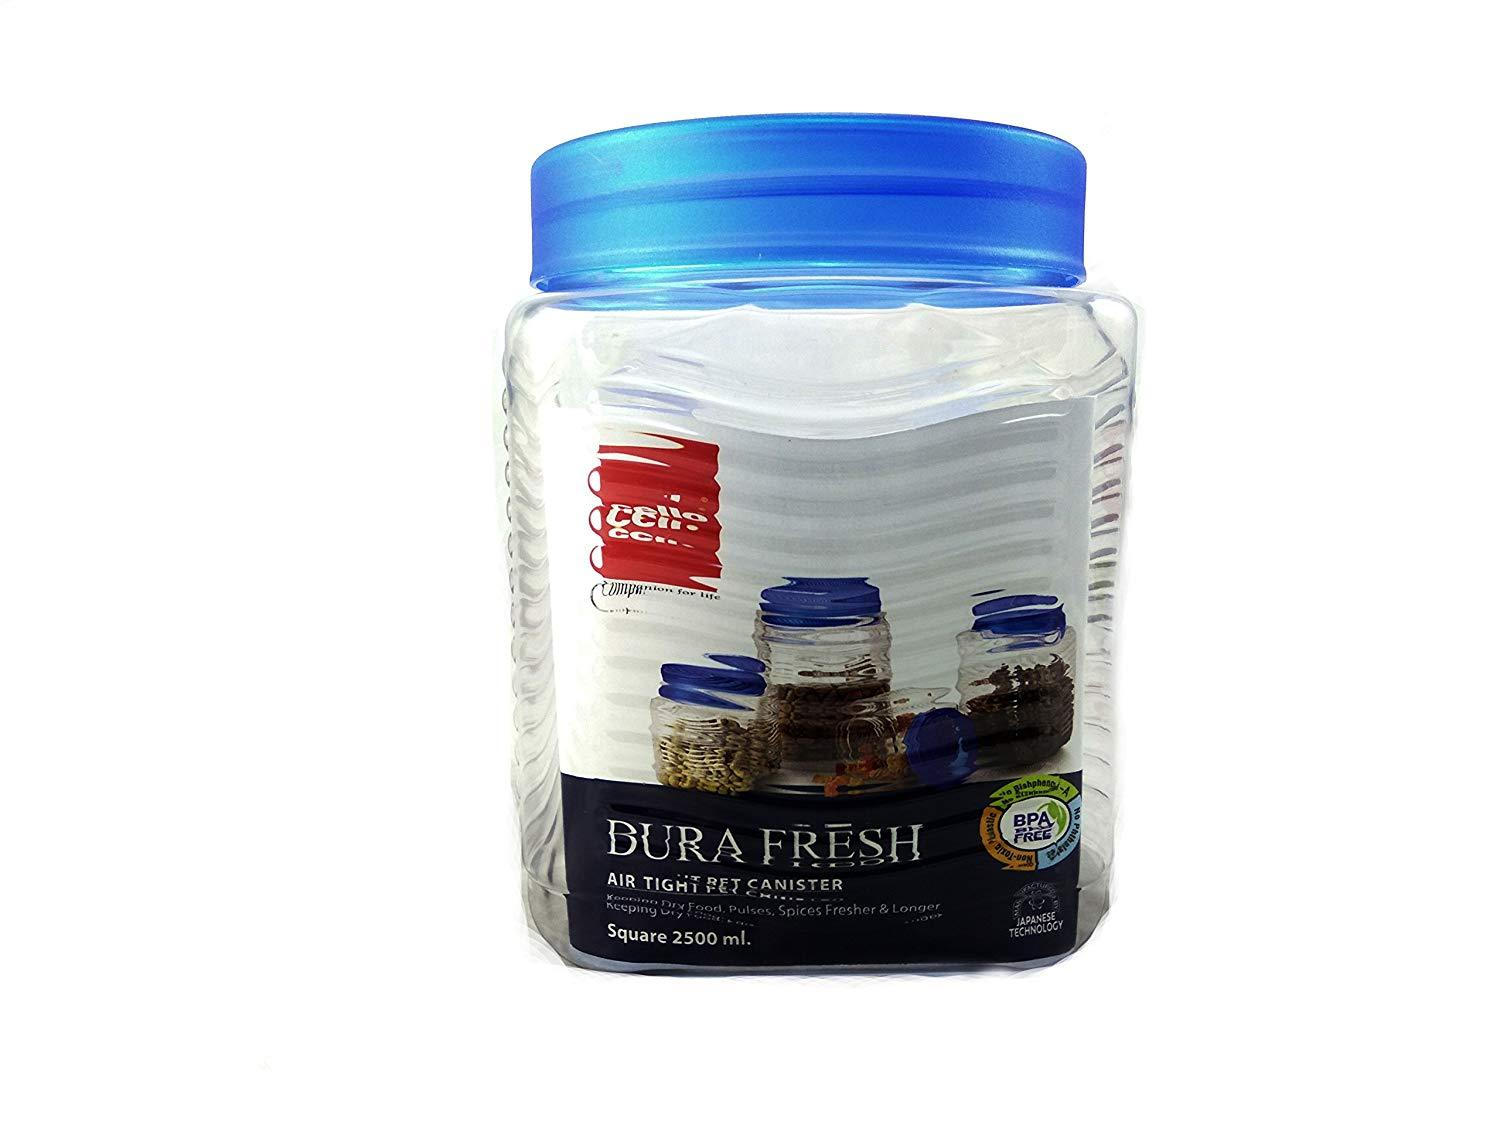 CELLO DURA FRESH 500ML 3PCS SET